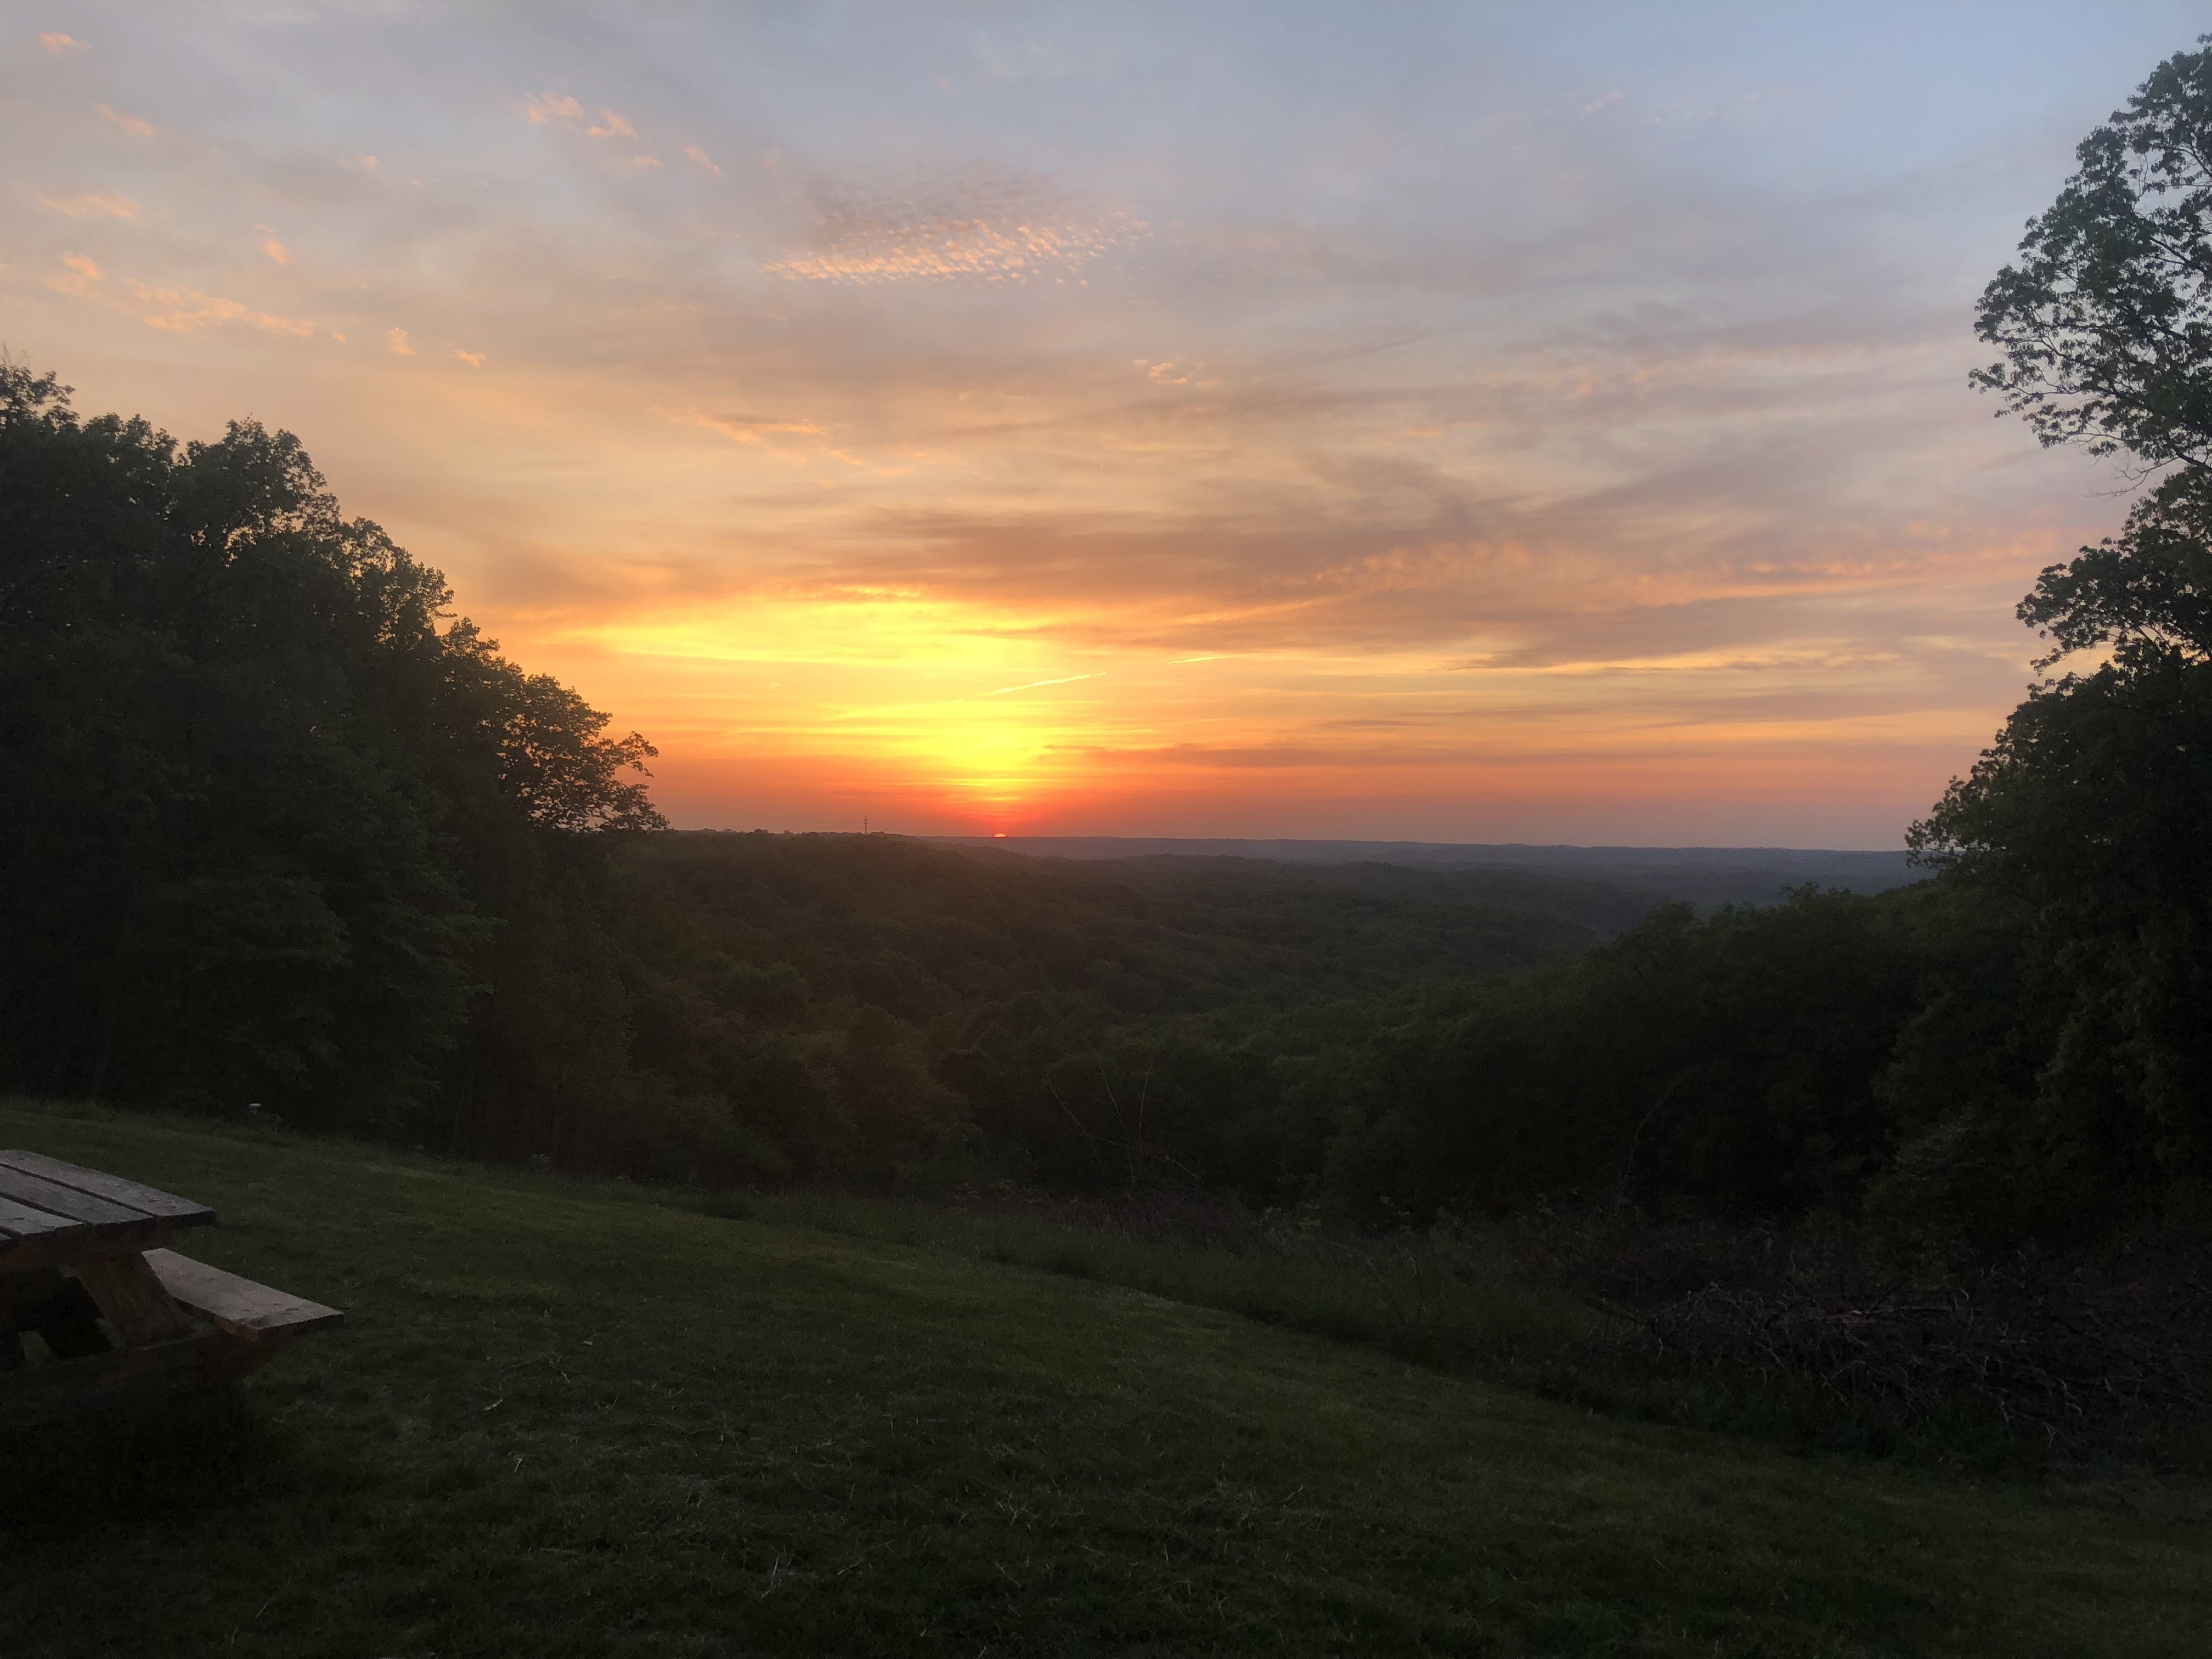 A sunset at Brown County State Park